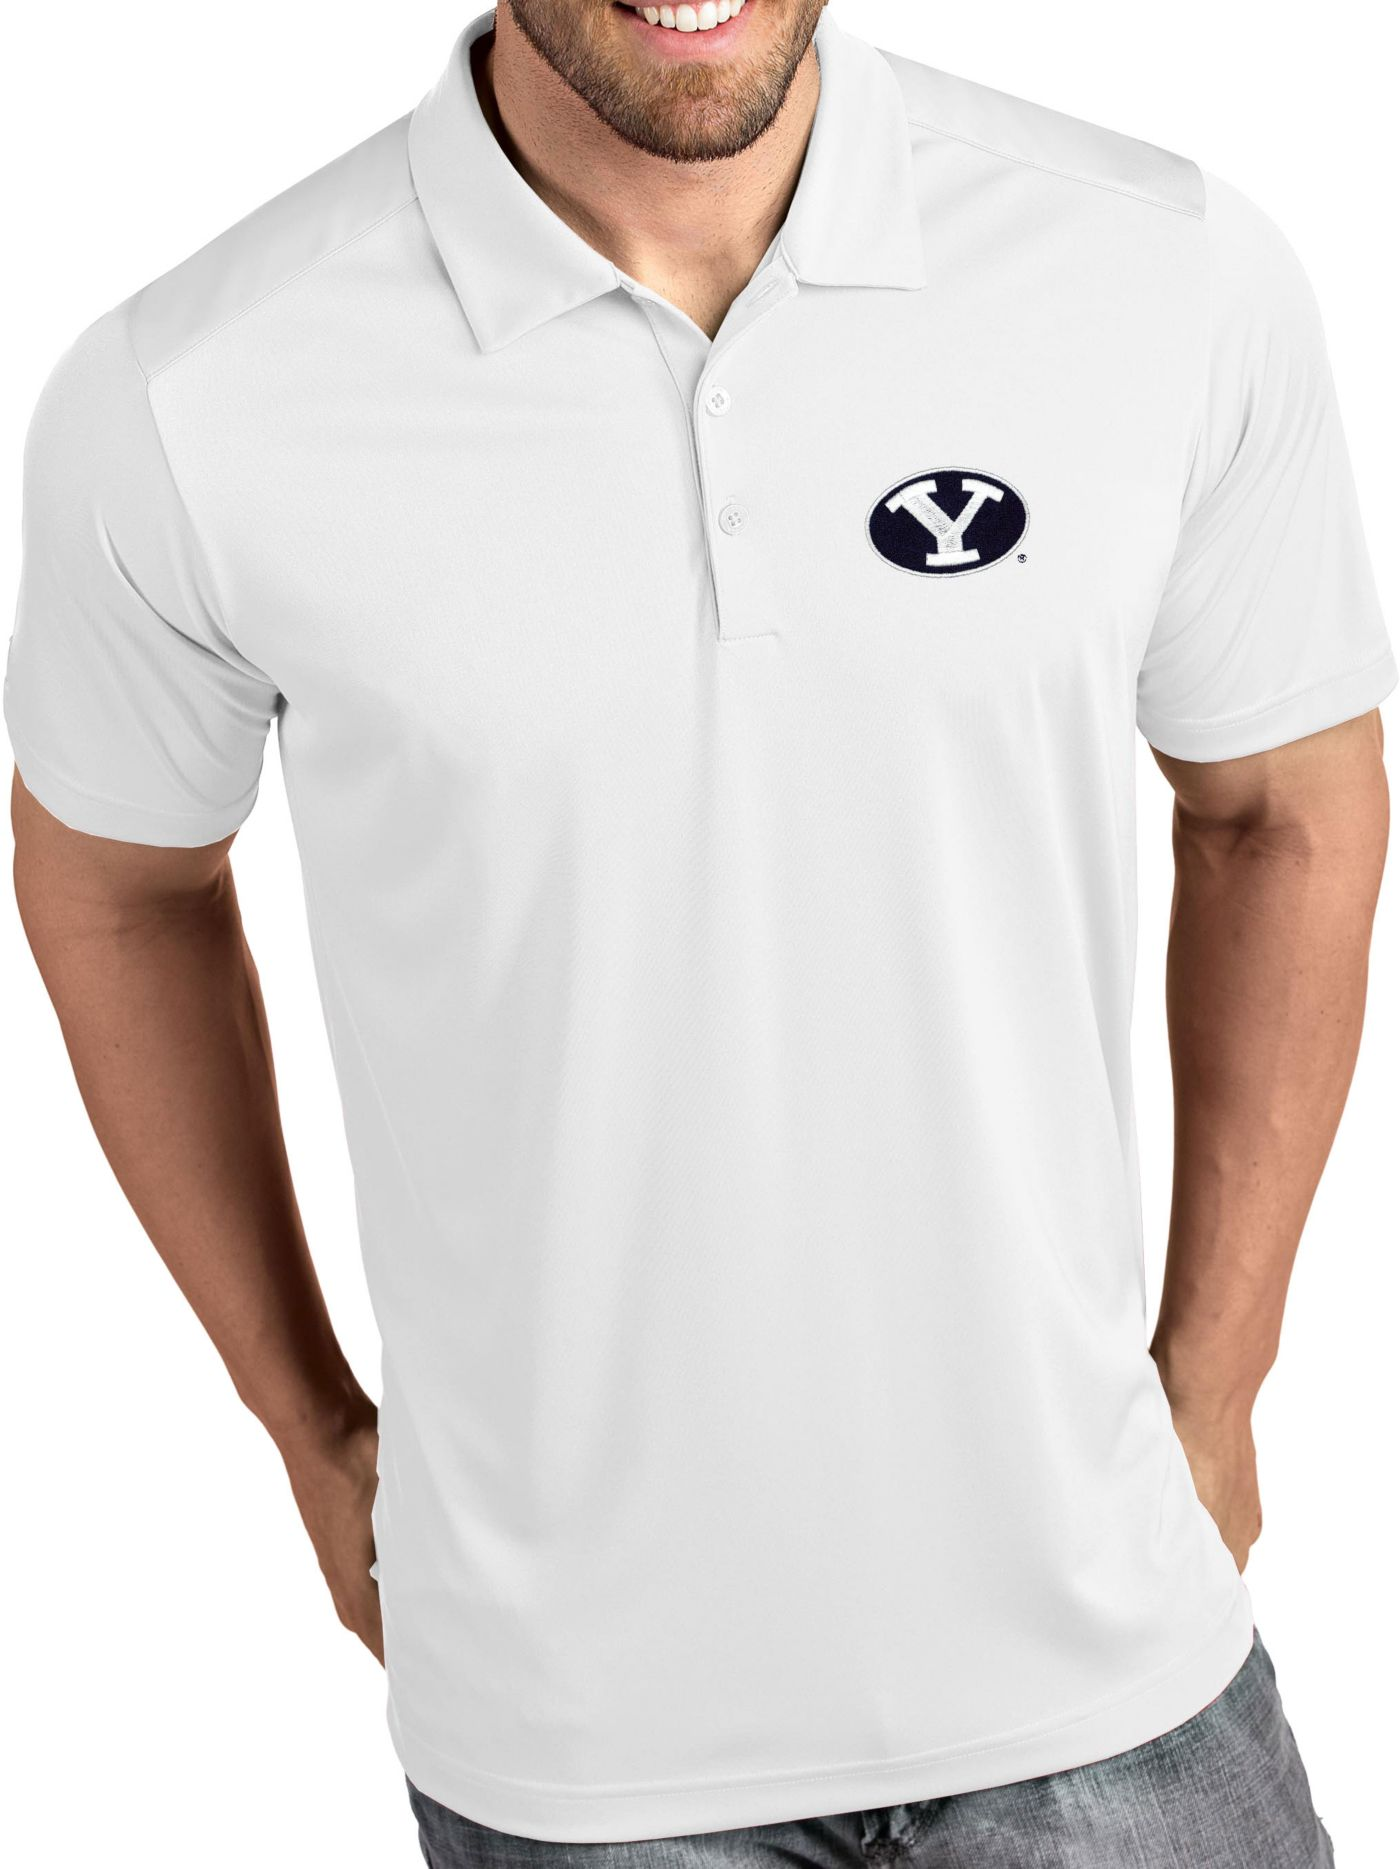 Antigua Men's BYU Cougars Tribute Performance White Polo